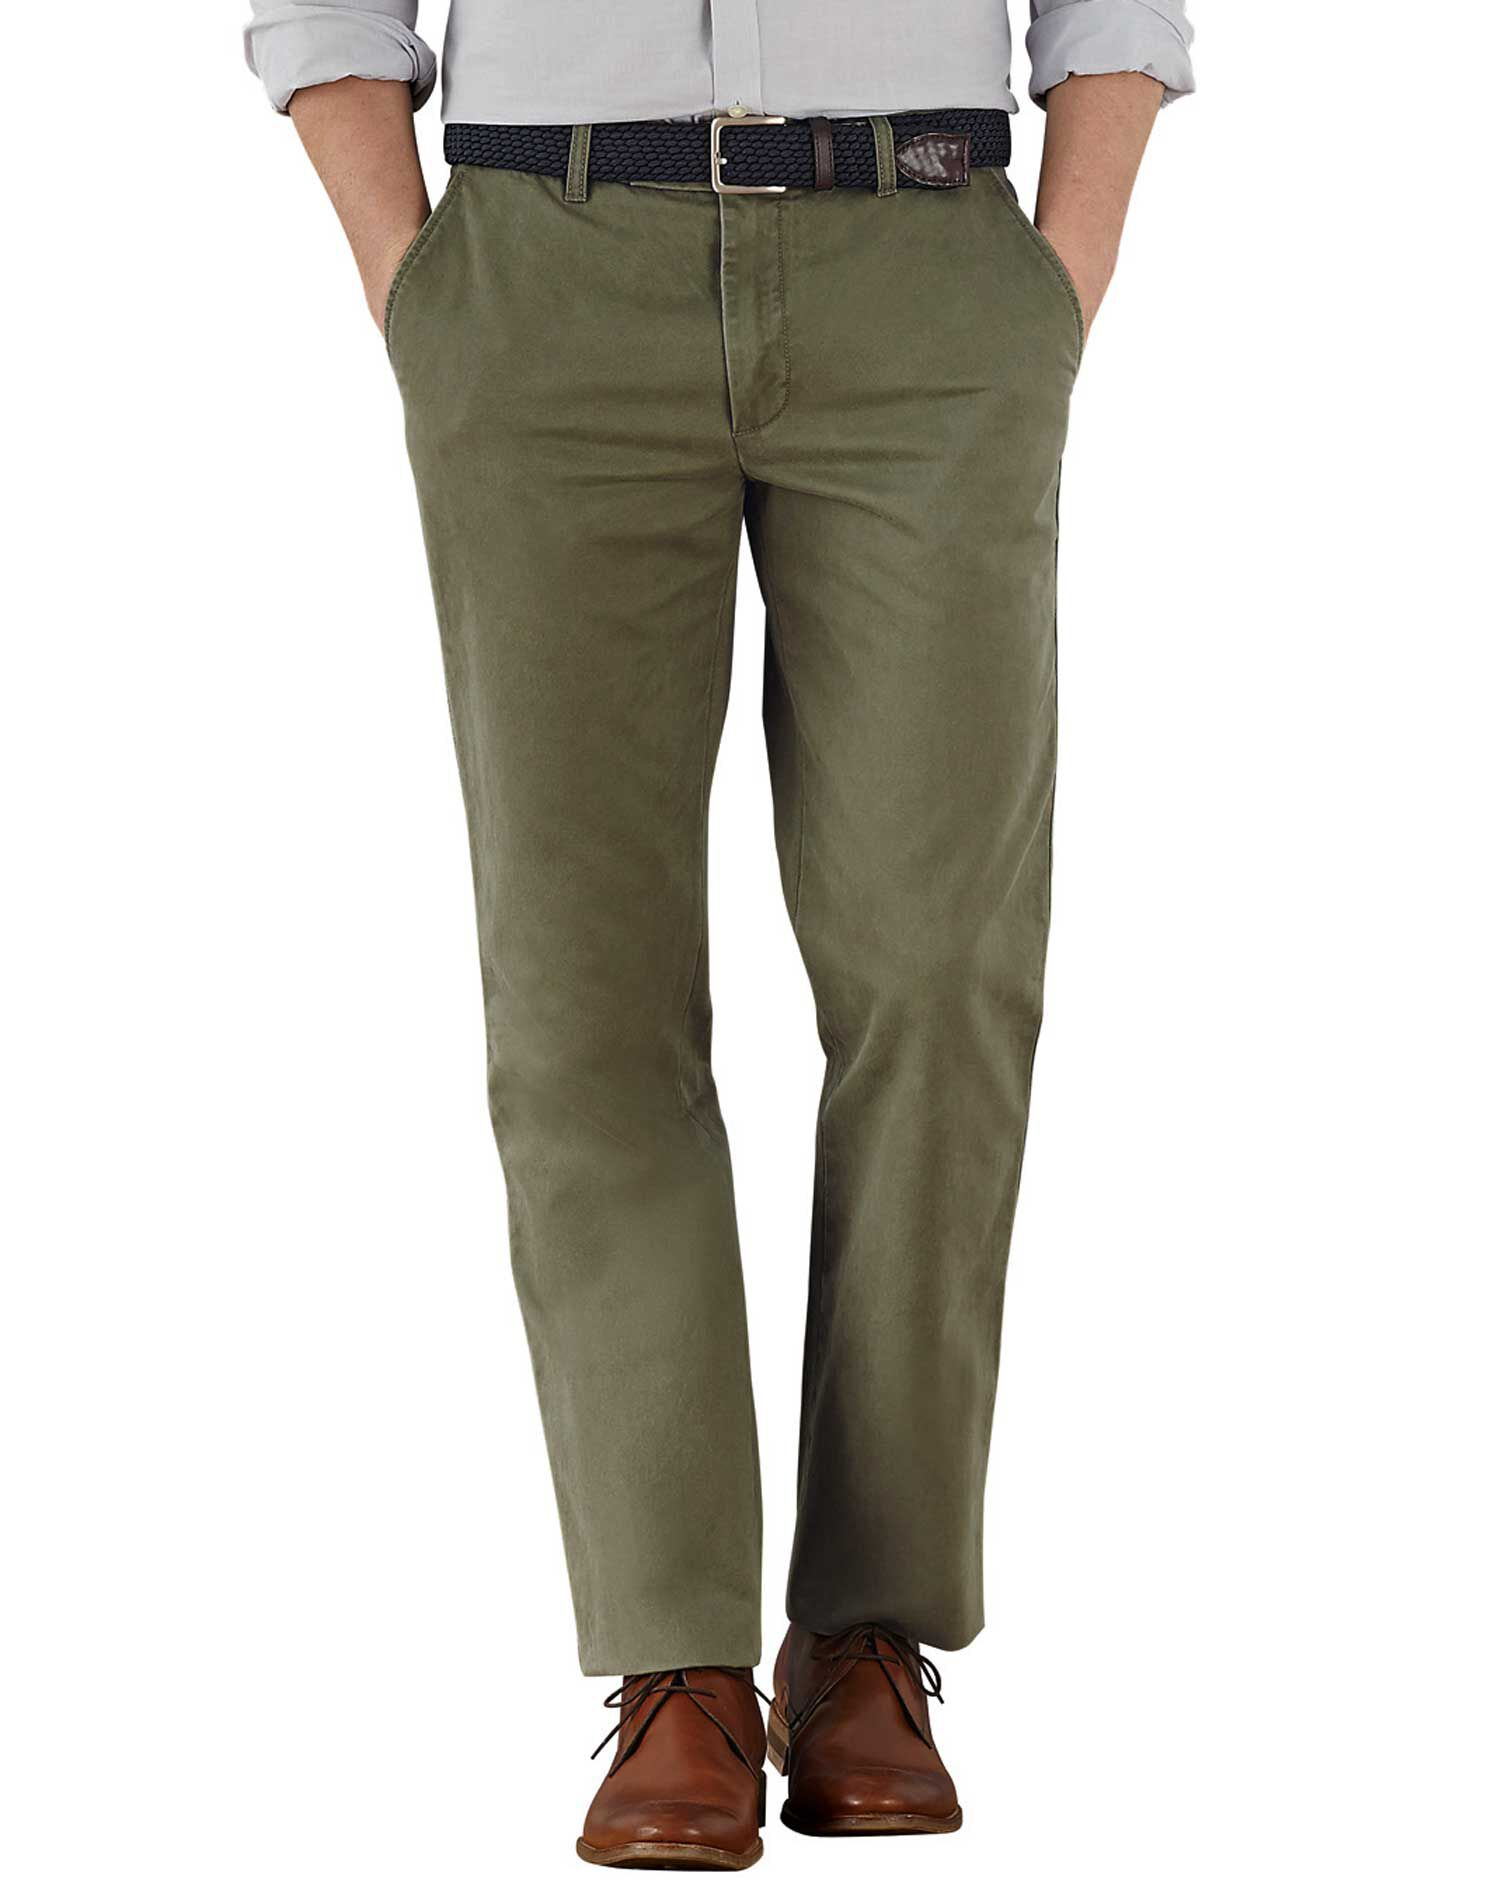 Olive Slim Fit Flat Front Cotton Chino Trousers Size W42 L38 by Charles Tyrwhitt